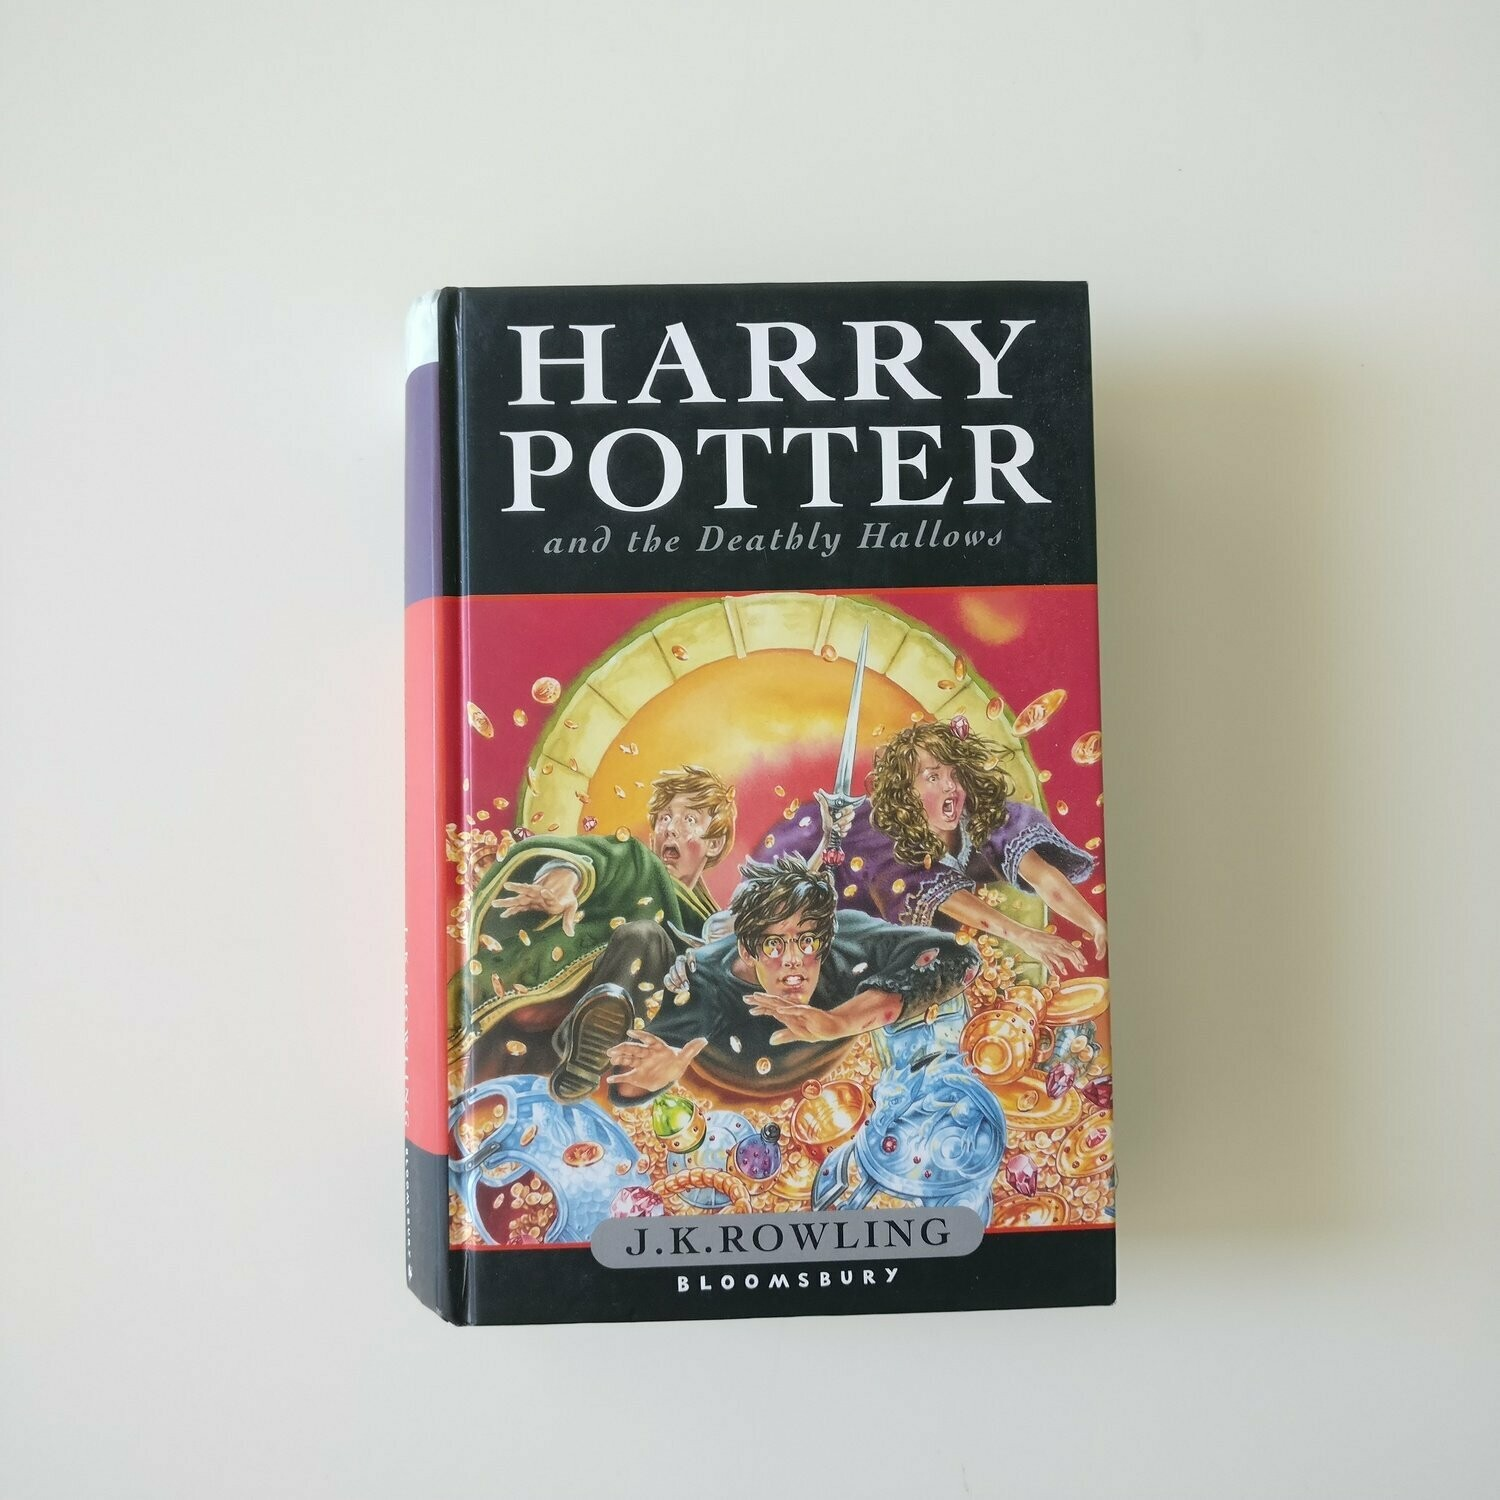 Harry Potter and the Deathly Hallows Notebook